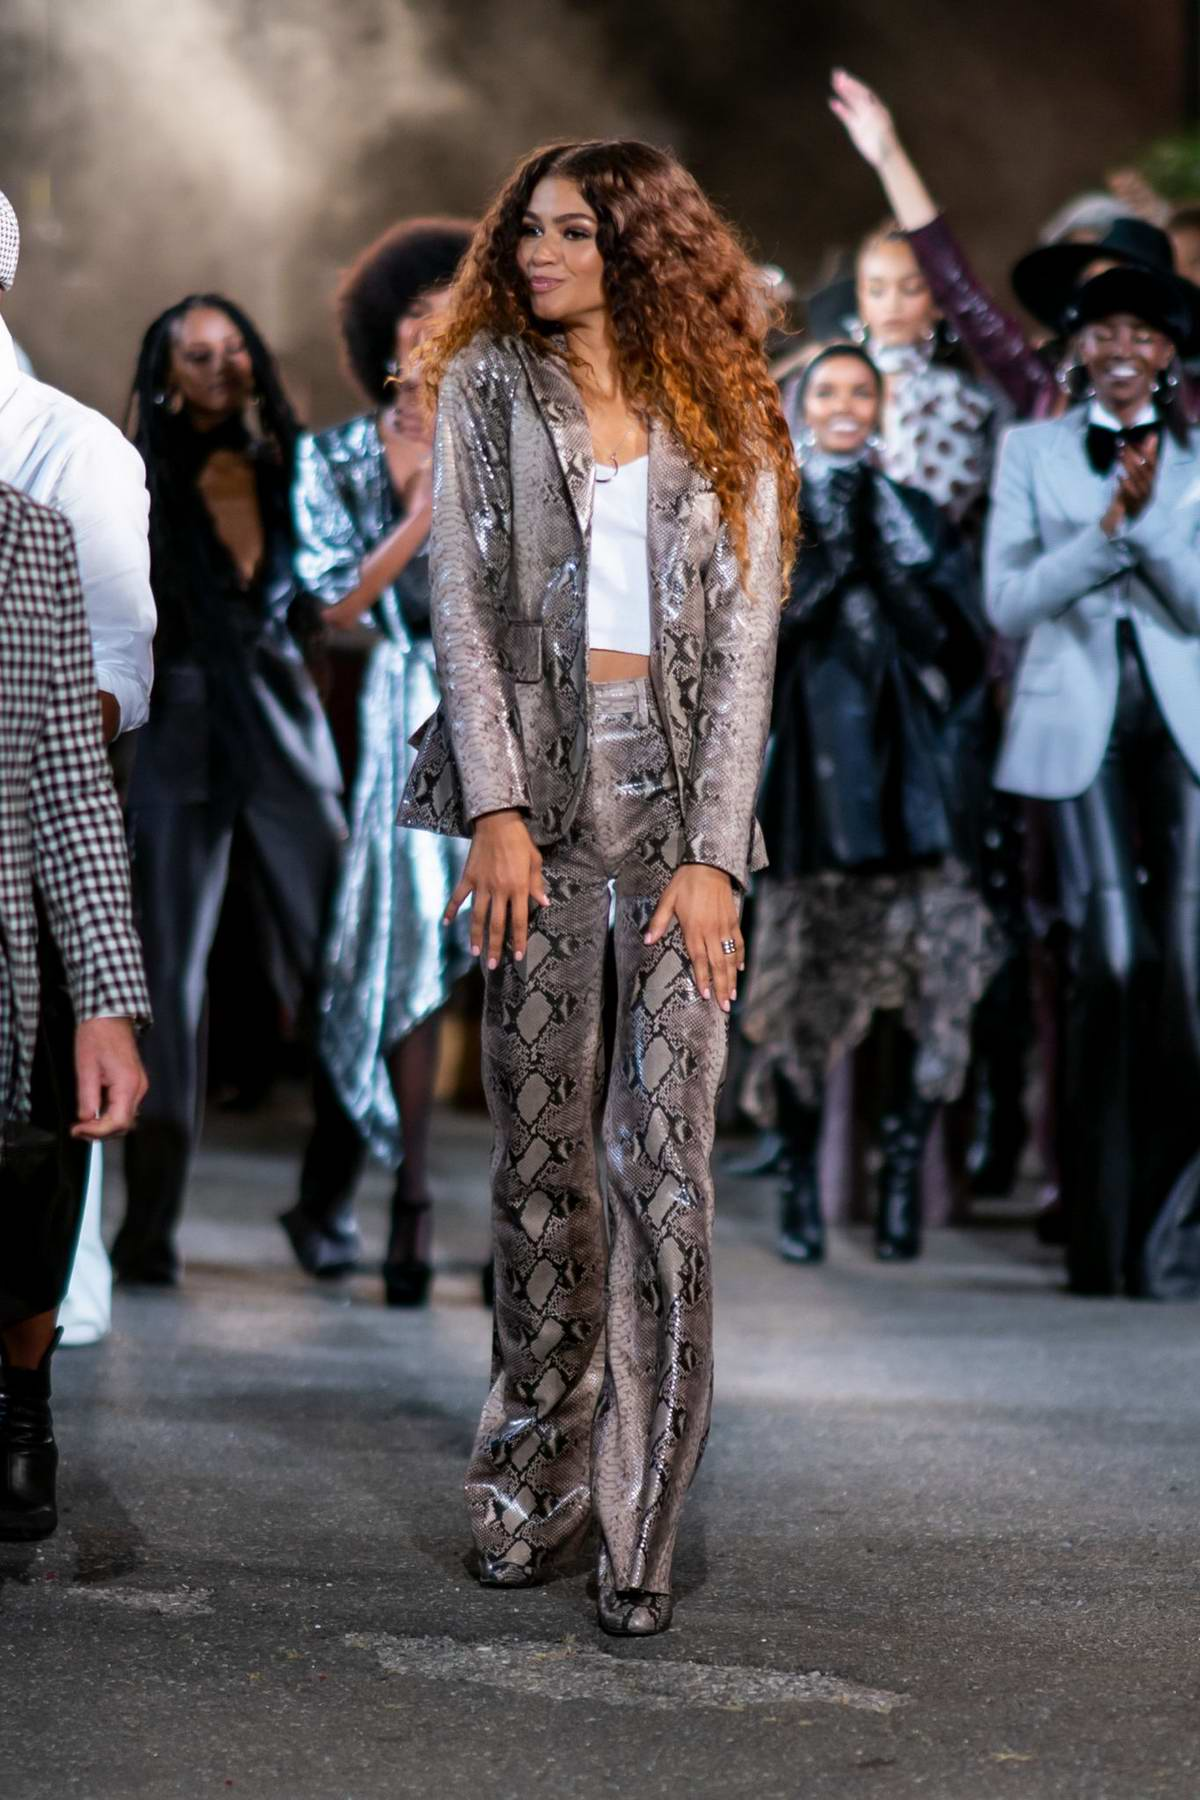 Zendaya attends the Tommy x Zendaya Show during NYFW at The Apollo Theater in New York City